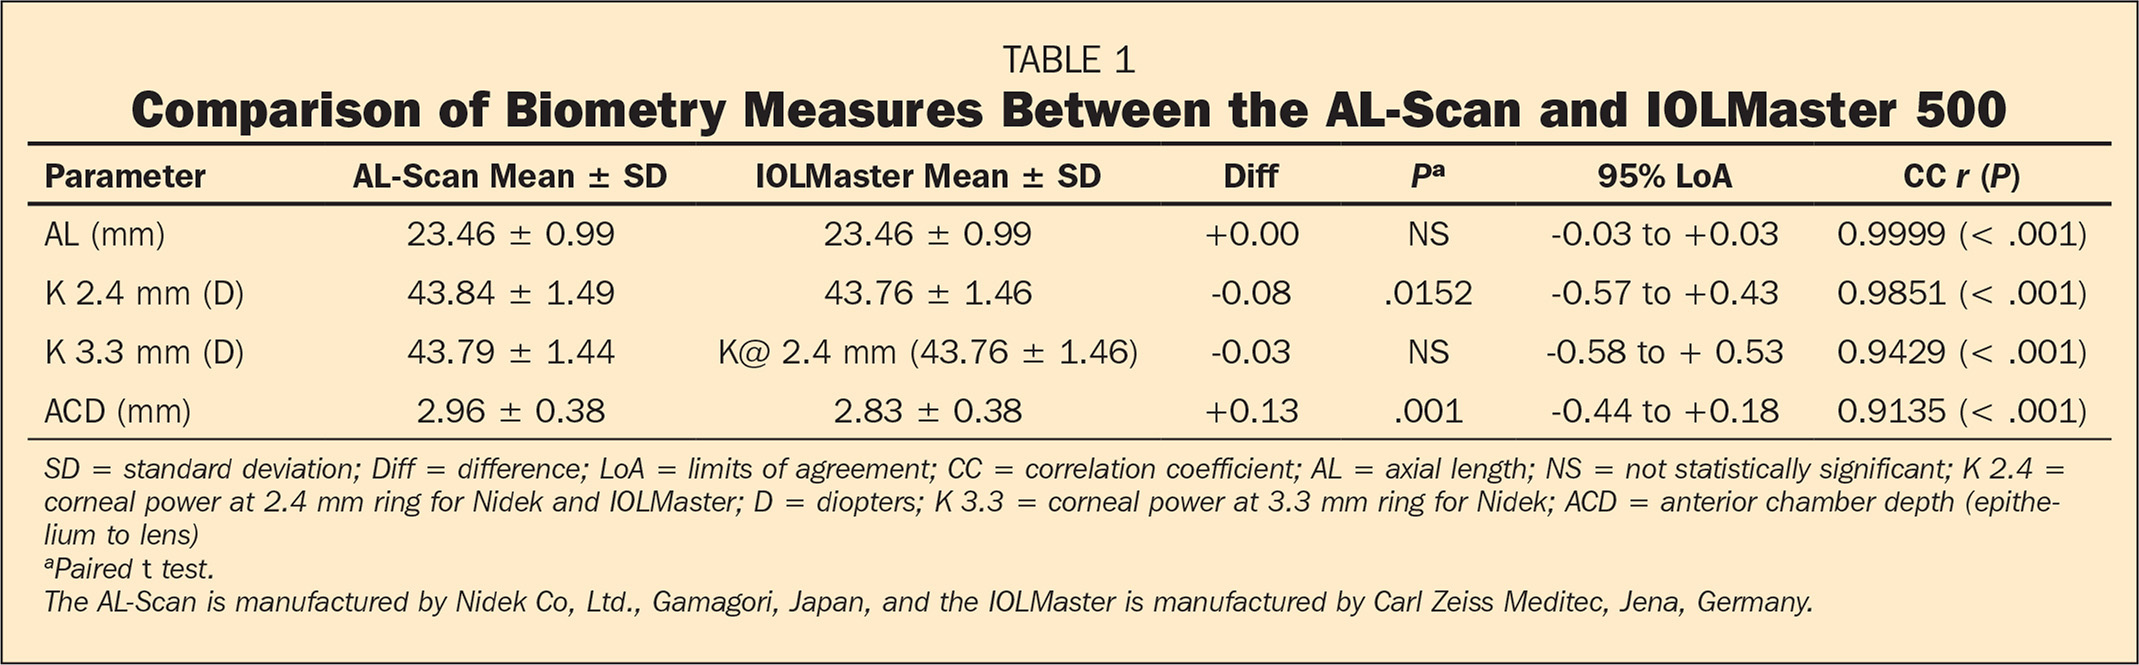 Comparison of Biometry Measures Between the AL-Scan and IOLMaster 500